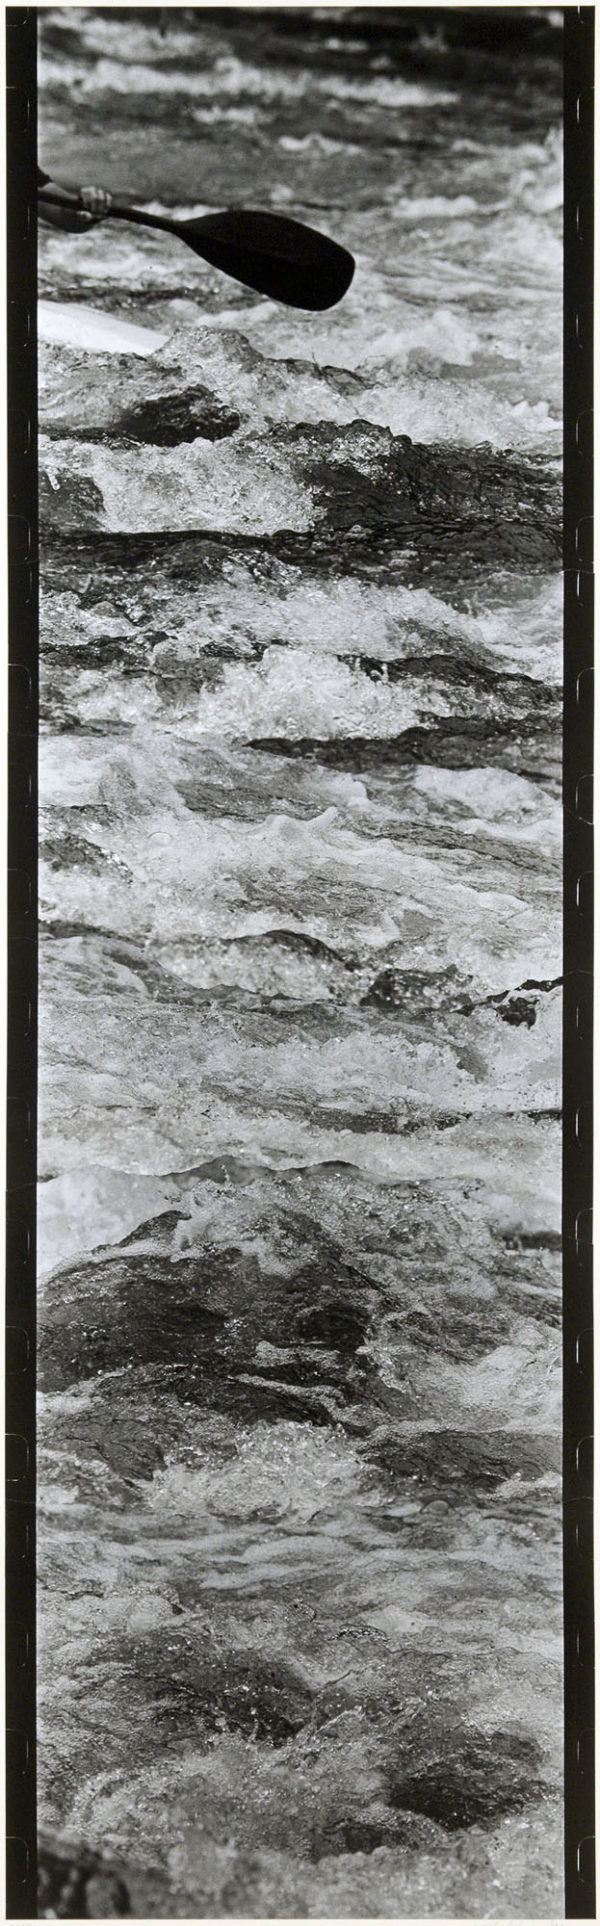 Wave and Canoe  2002, Gelatin silver print on watercolor paper with glue, 616×190mm, limited edition: #1/1 ©Yoshihiko Ito